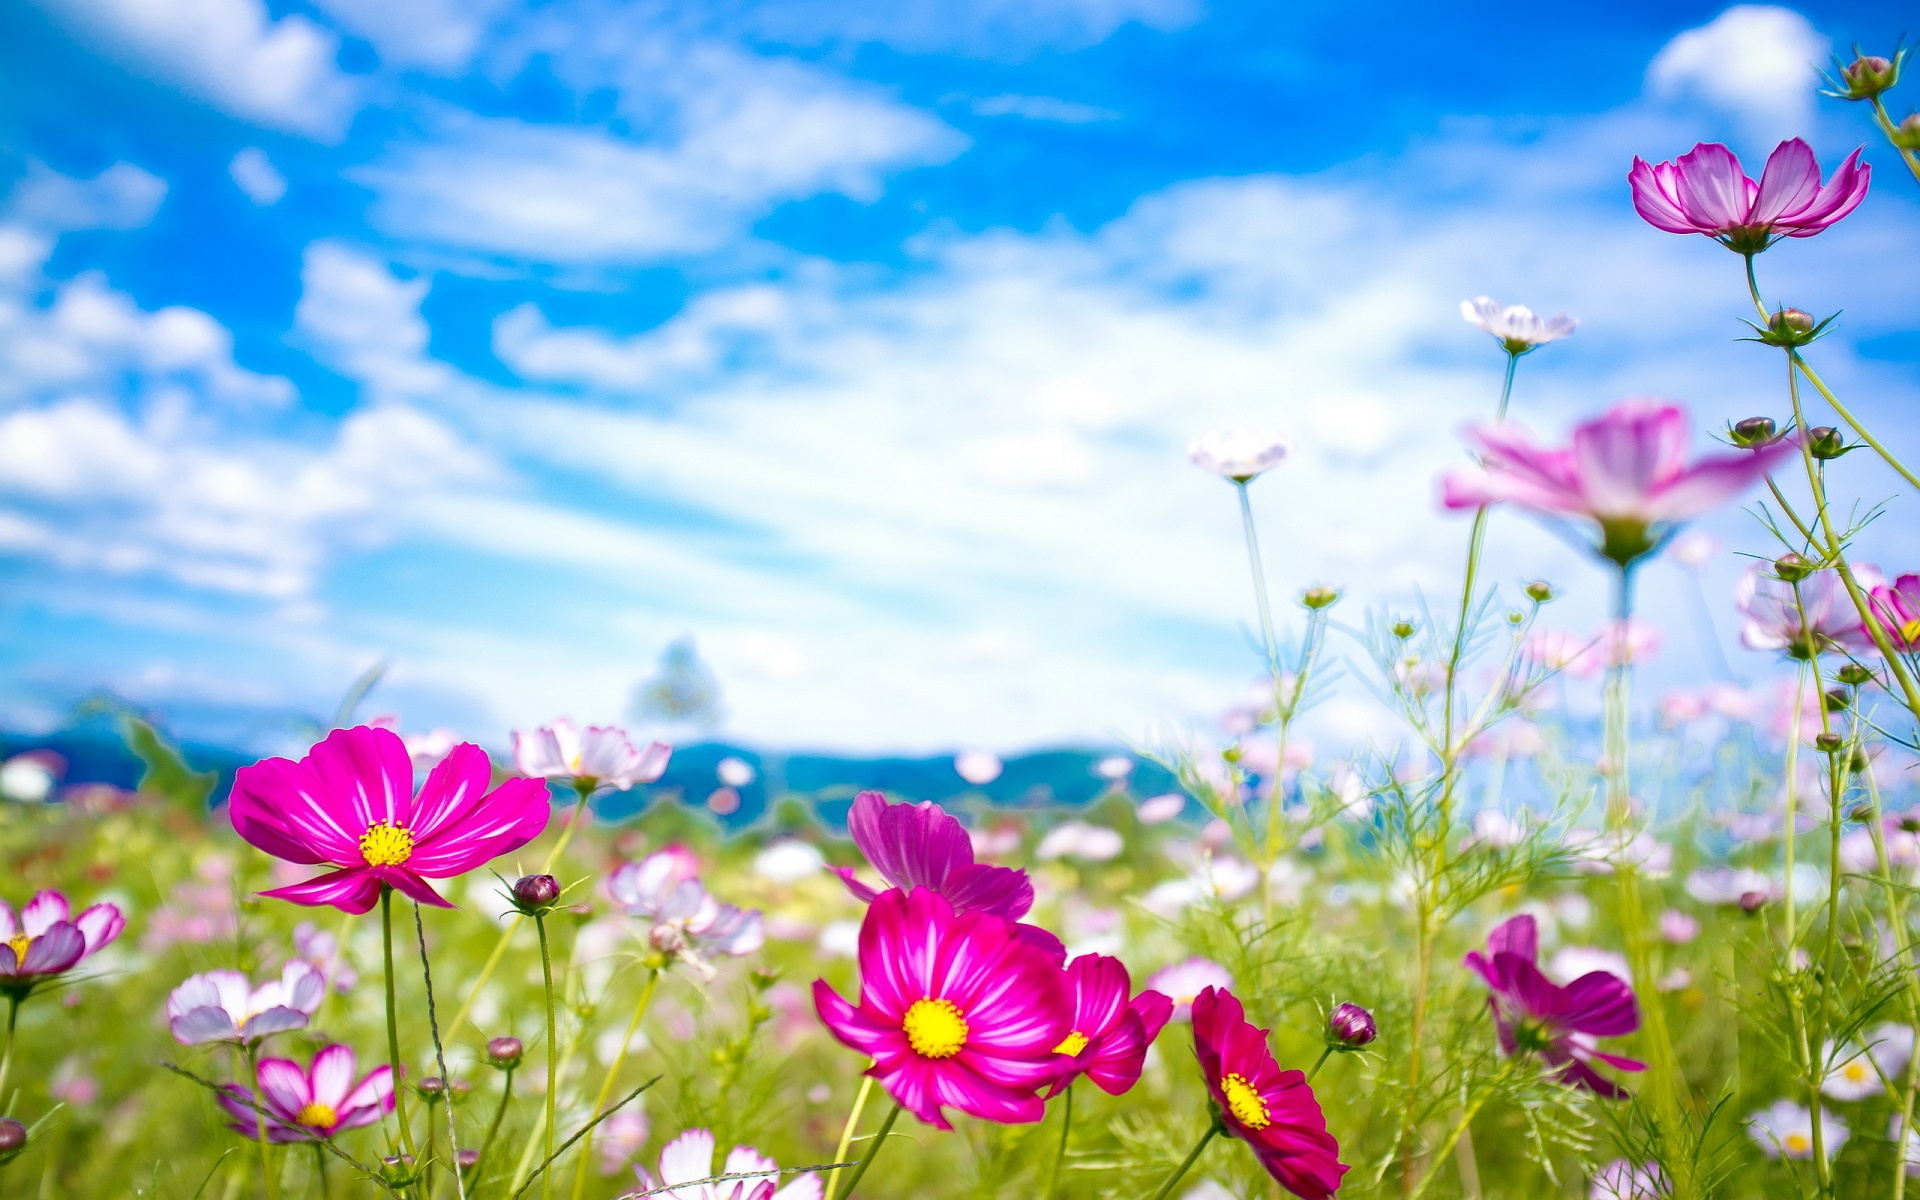 Pink Flowers Summer HD Wallpaper Widescreen  ImageBank.biz